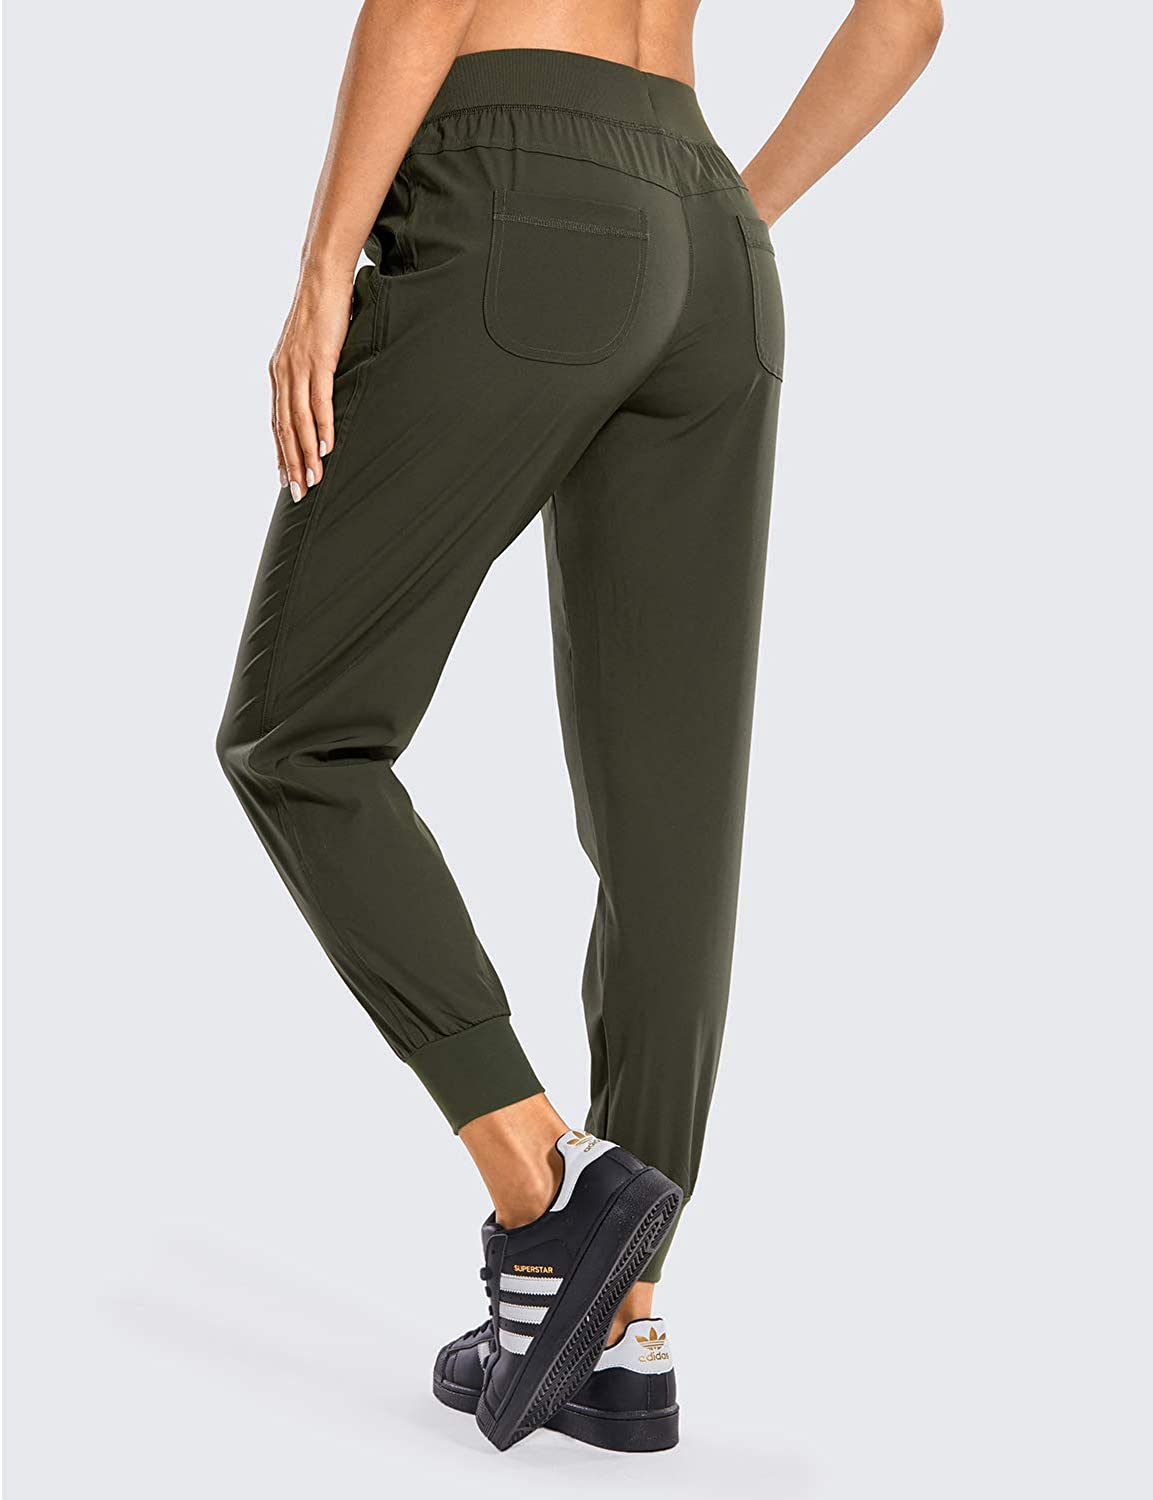 CRZ YOGA Women's Lightweight Joggers Pants with Pockets Drawstring Workout Running Pants with Elastic Waist: Clothing